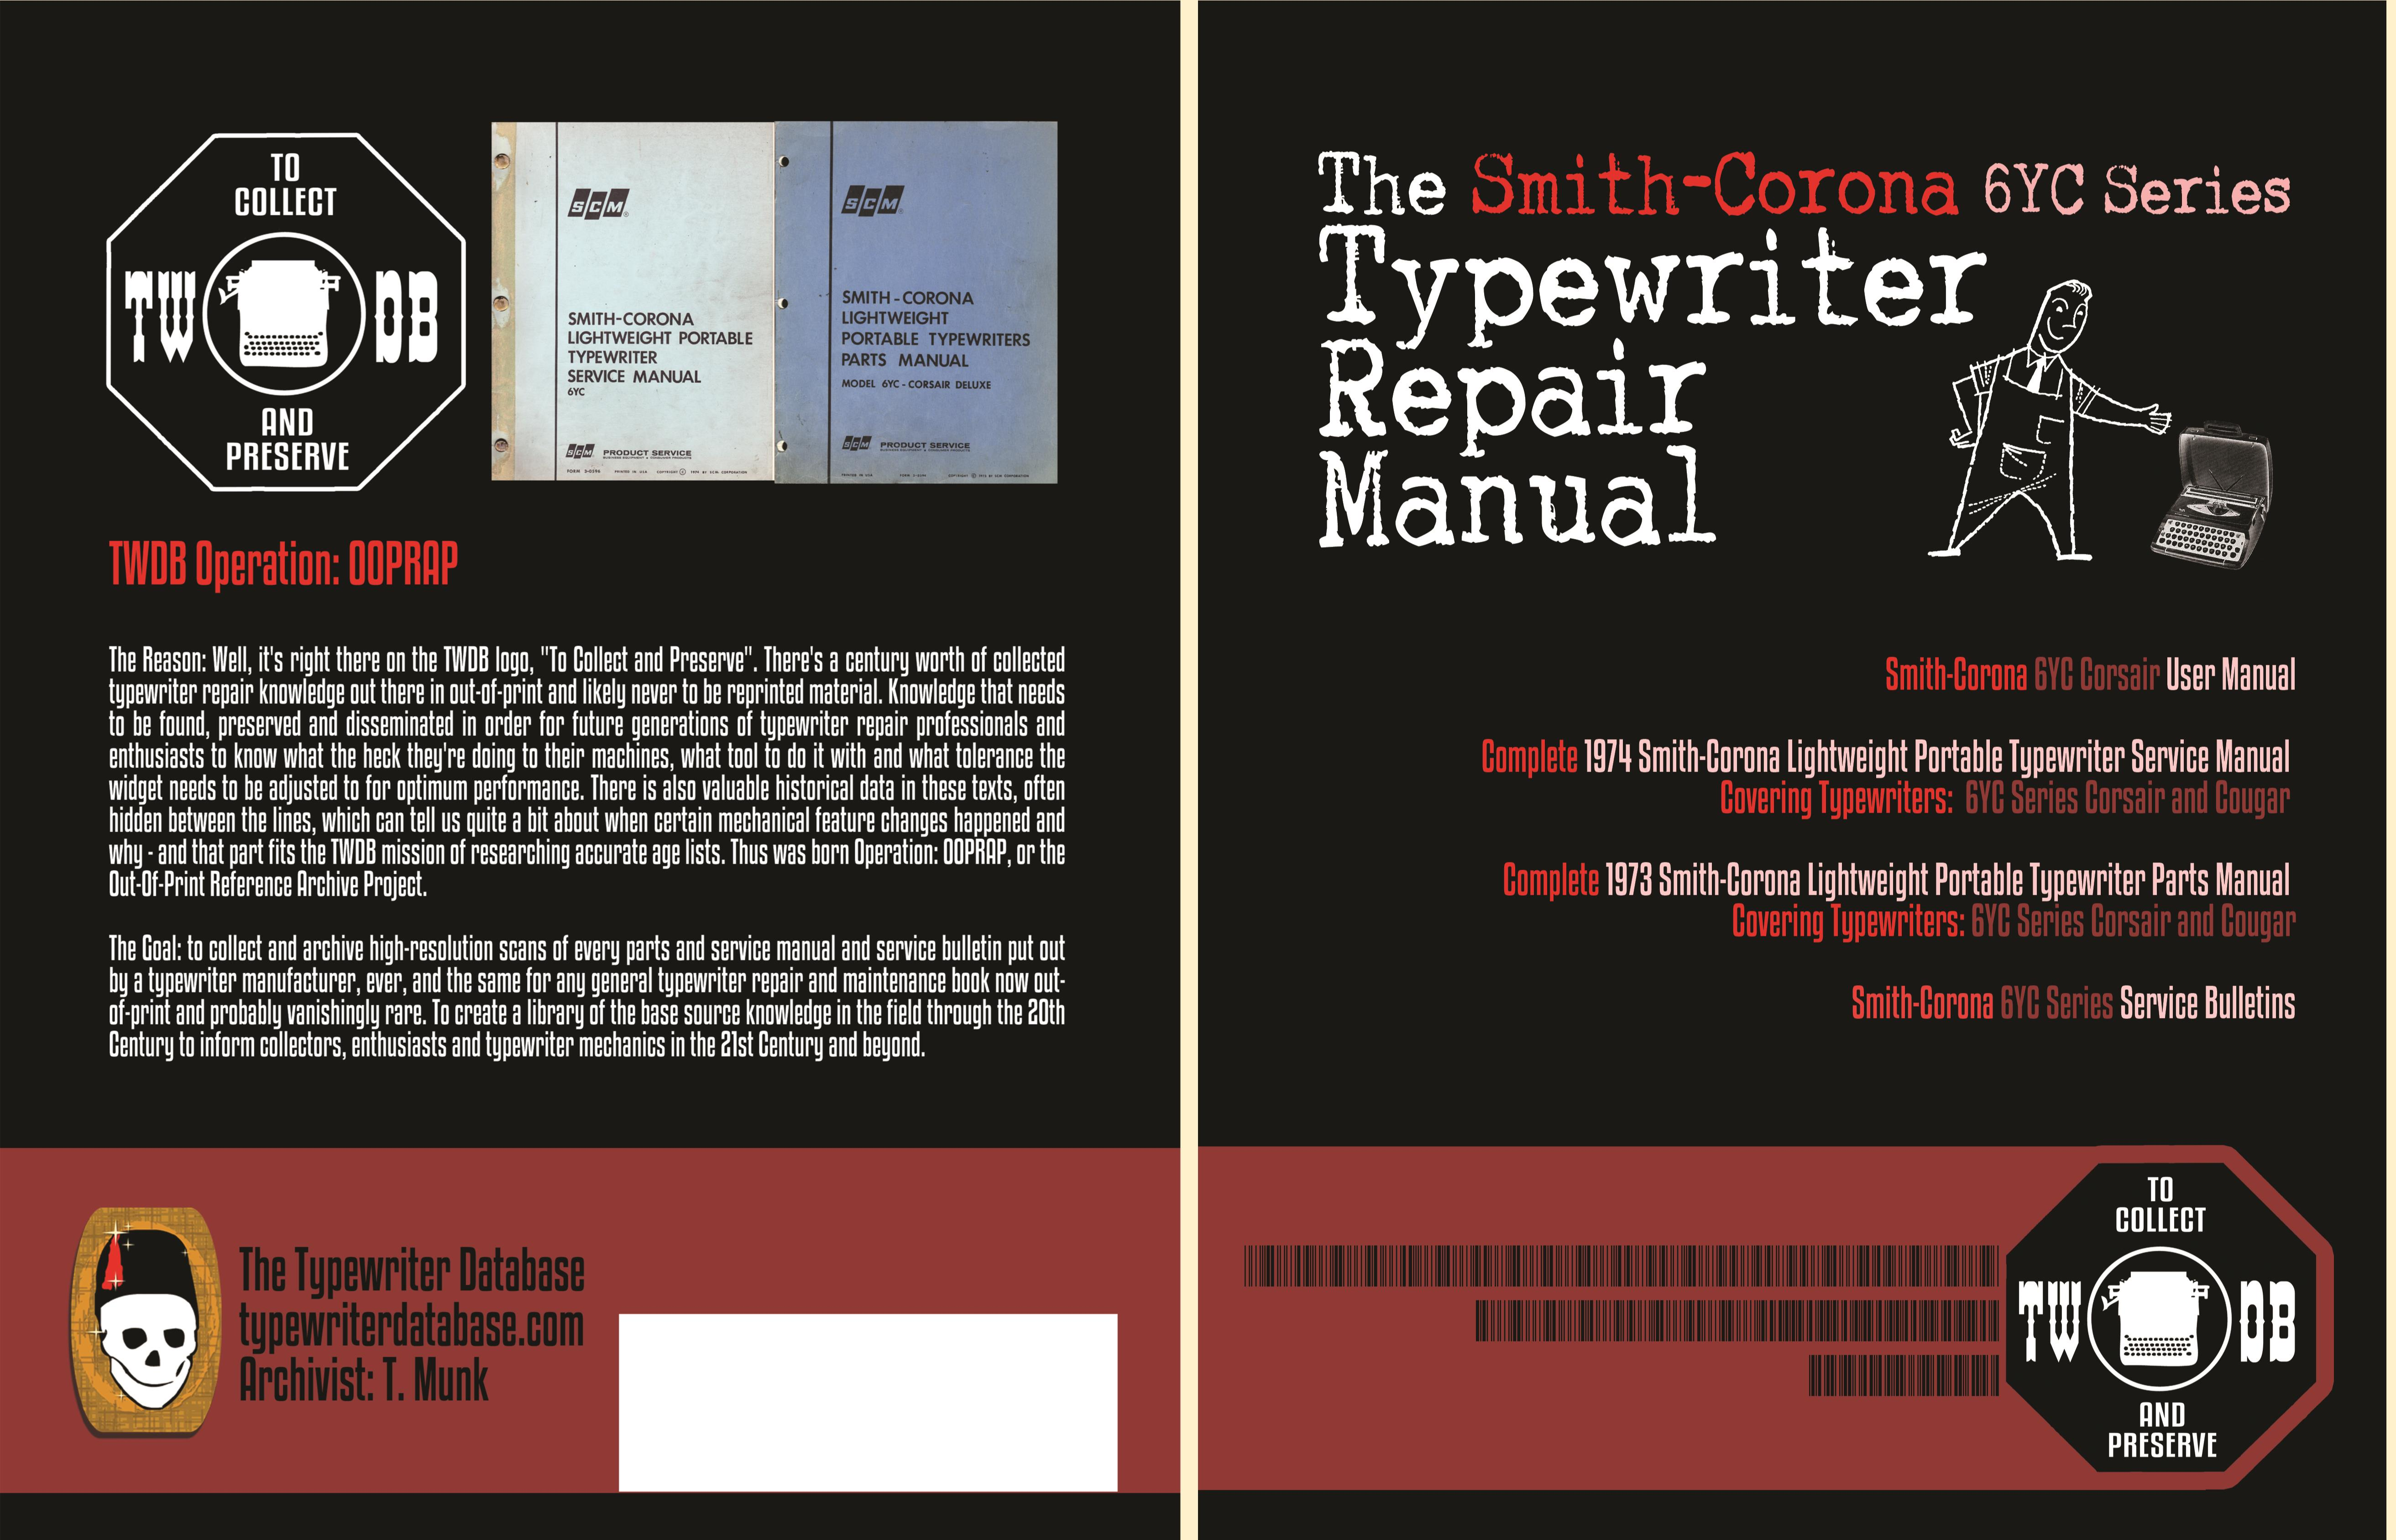 The Smith-Corona 6YC Series Typewriter Repair Manual cover image